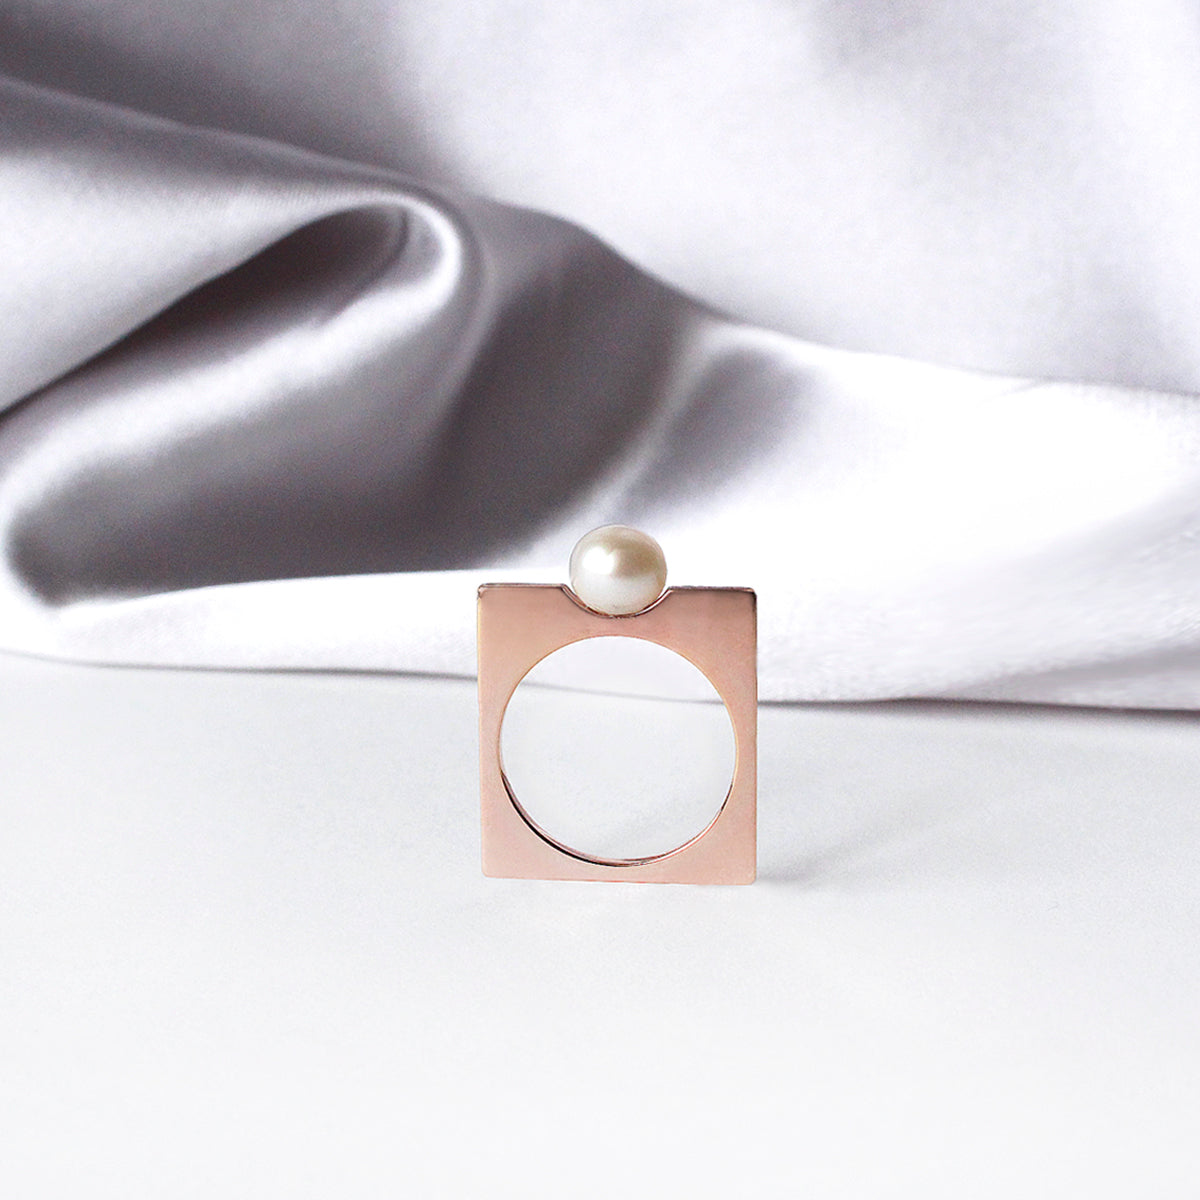 Renata Ring- 14k rose gold-plated.